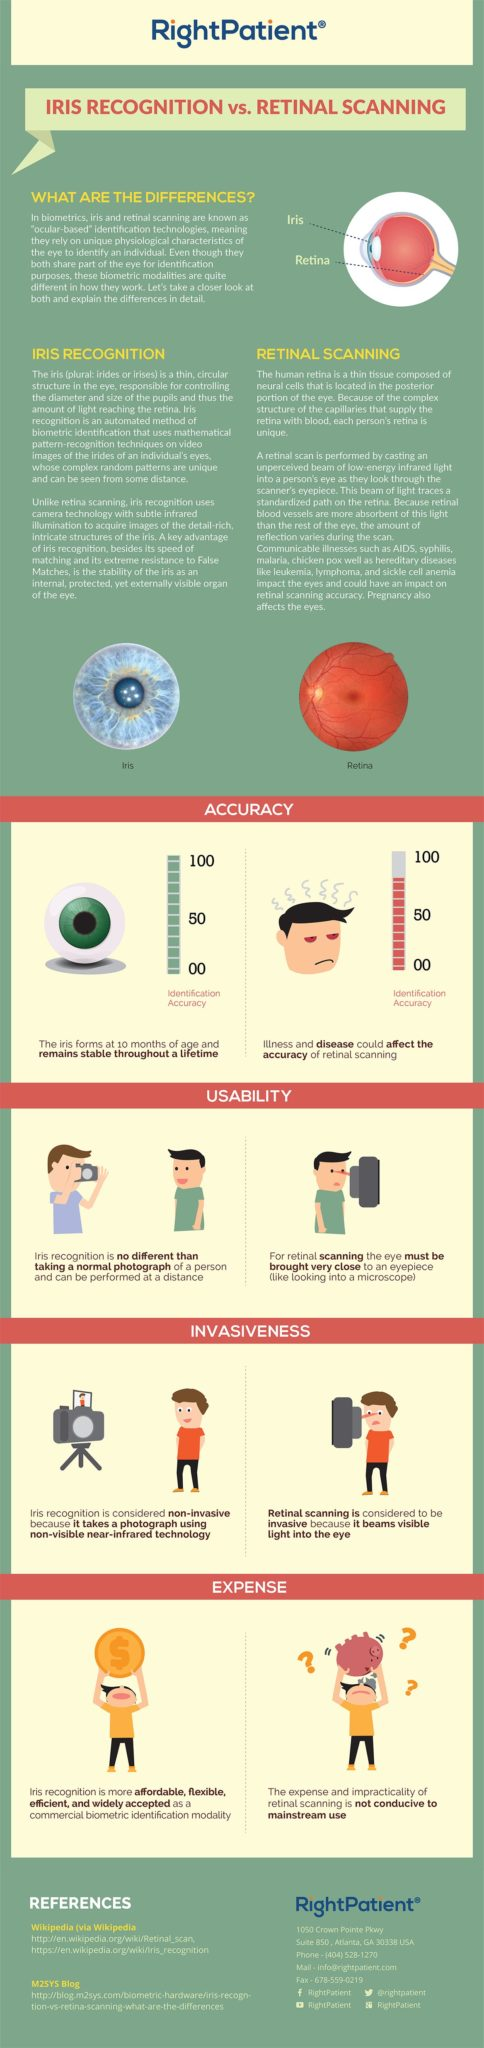 what are the differences between iris recognition and retinal scanning?